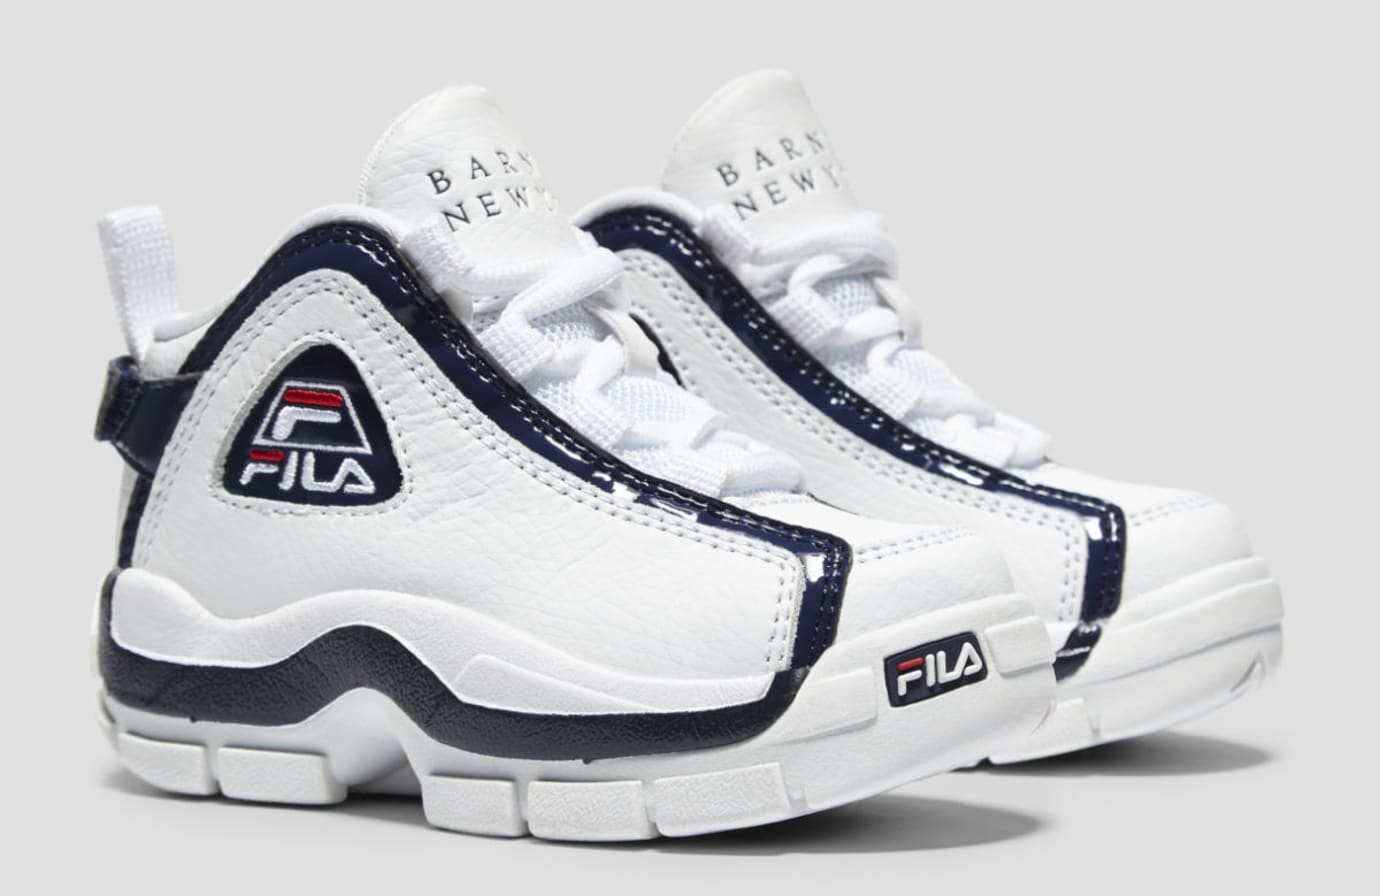 a649754fb34 FILA 96 Grant Hill II 2 Barney's Haus of Jr. Release Date | Sole ...